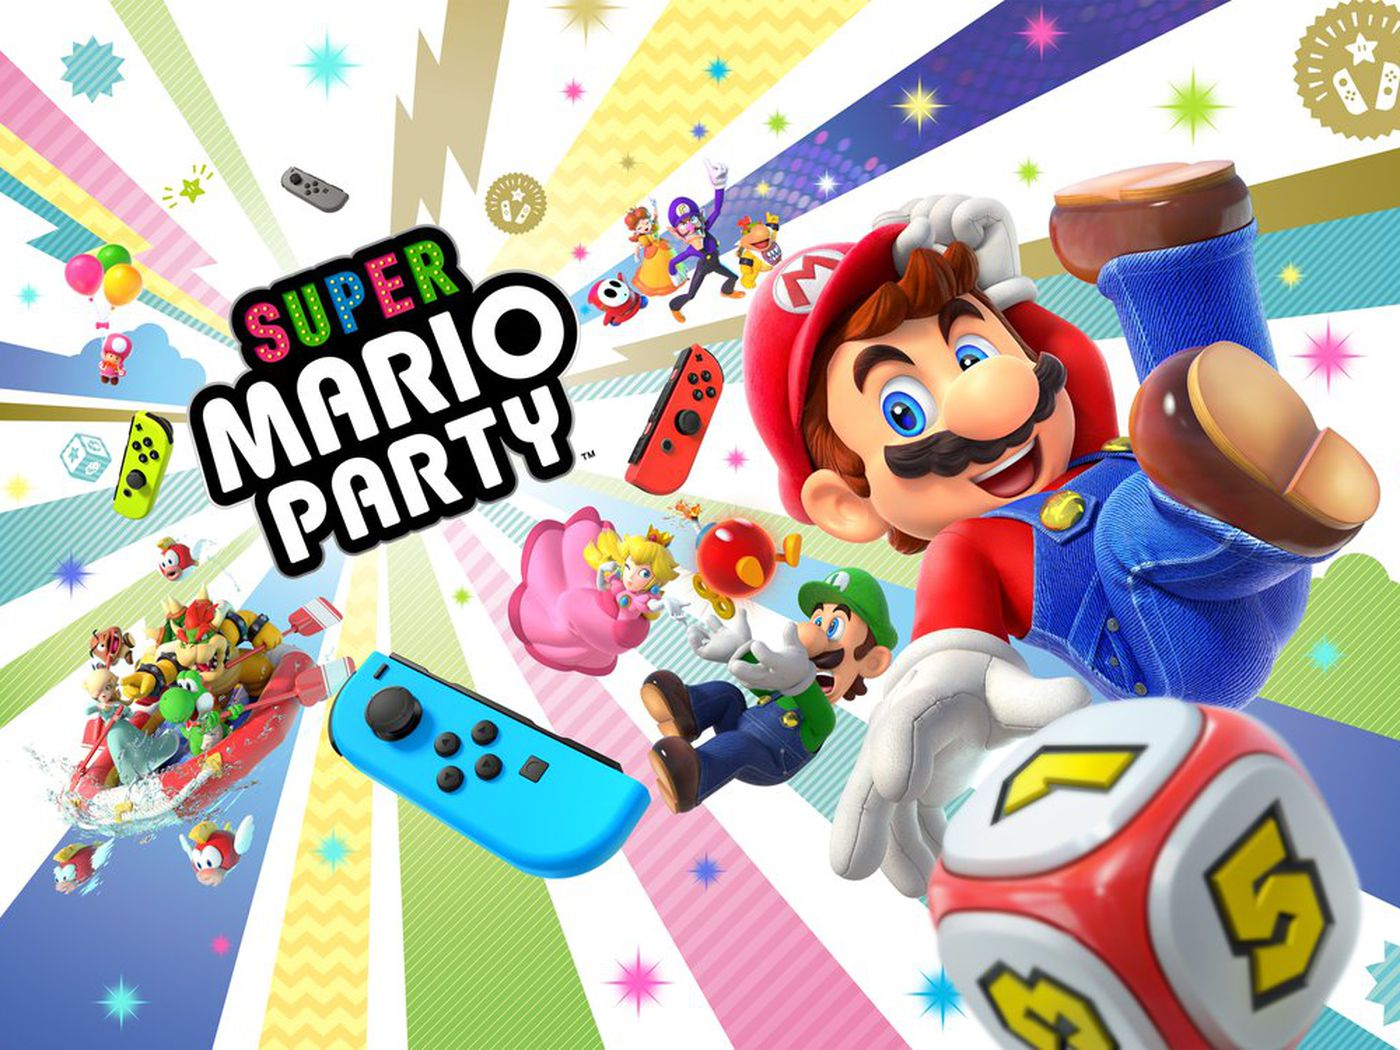 Super Mario Party might be the most creative Switch game yet